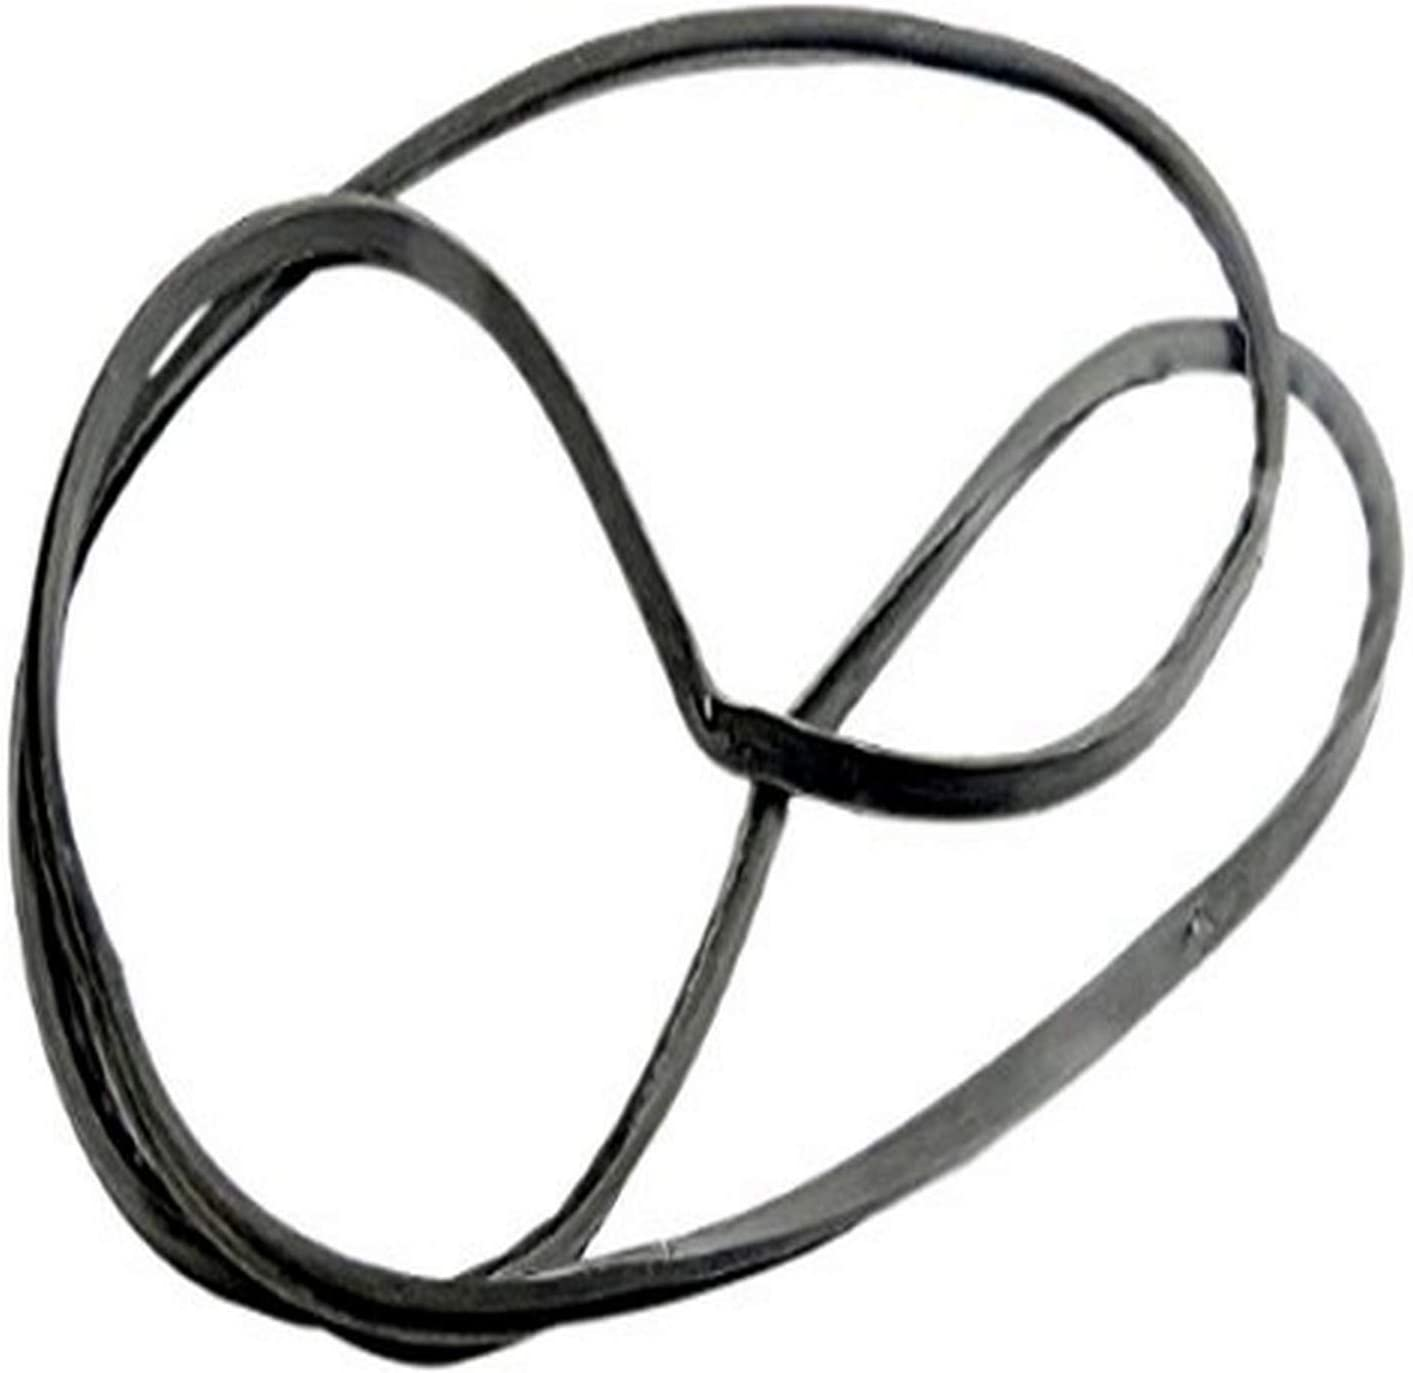 Bertazzoni 411118 GASKET FOR OVEN FRONT 4 SIDE (